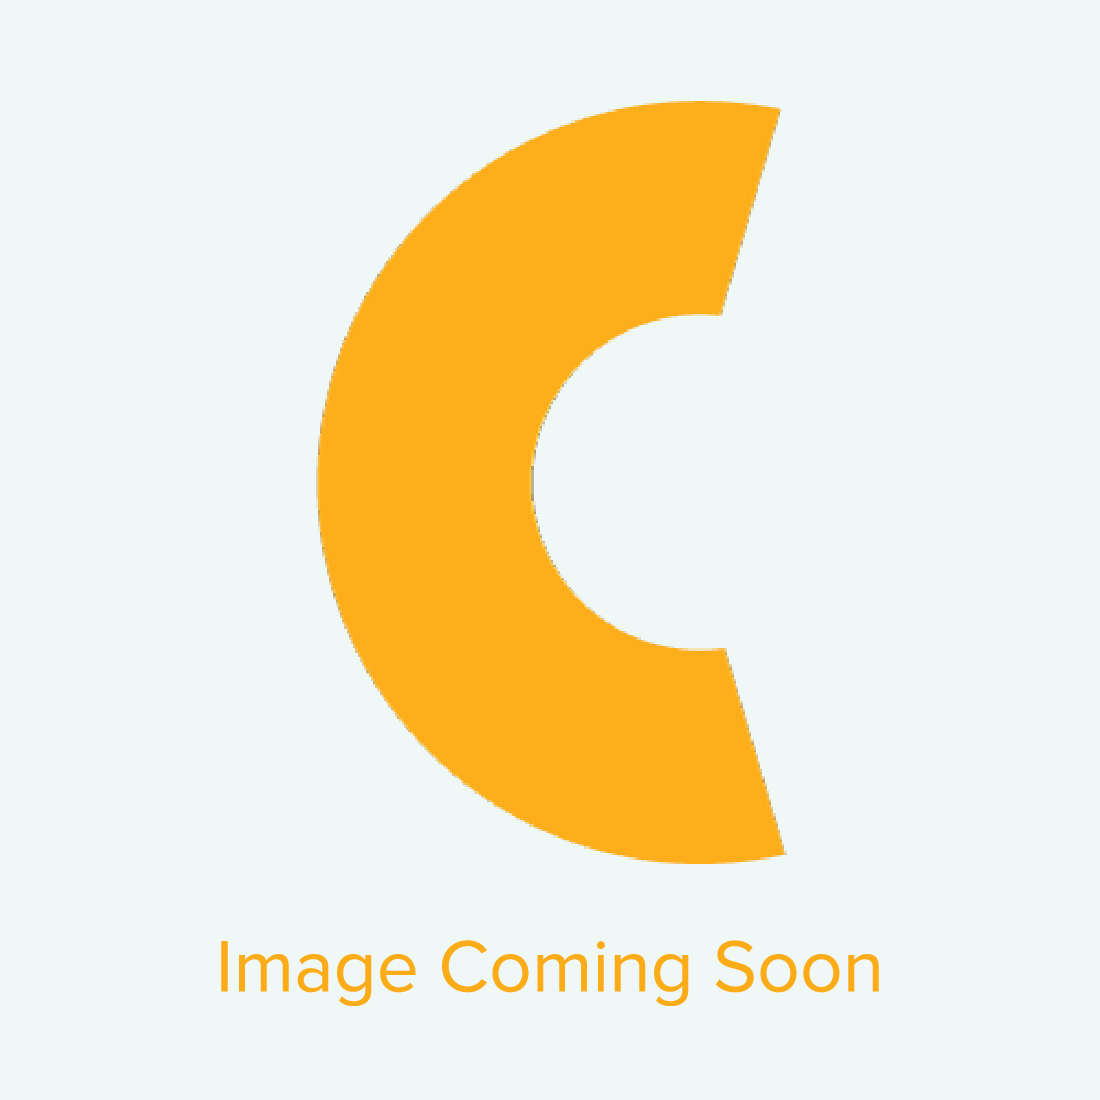 Sawgrass SG800 & Fusion IQ Intermediate Heat Press Kit